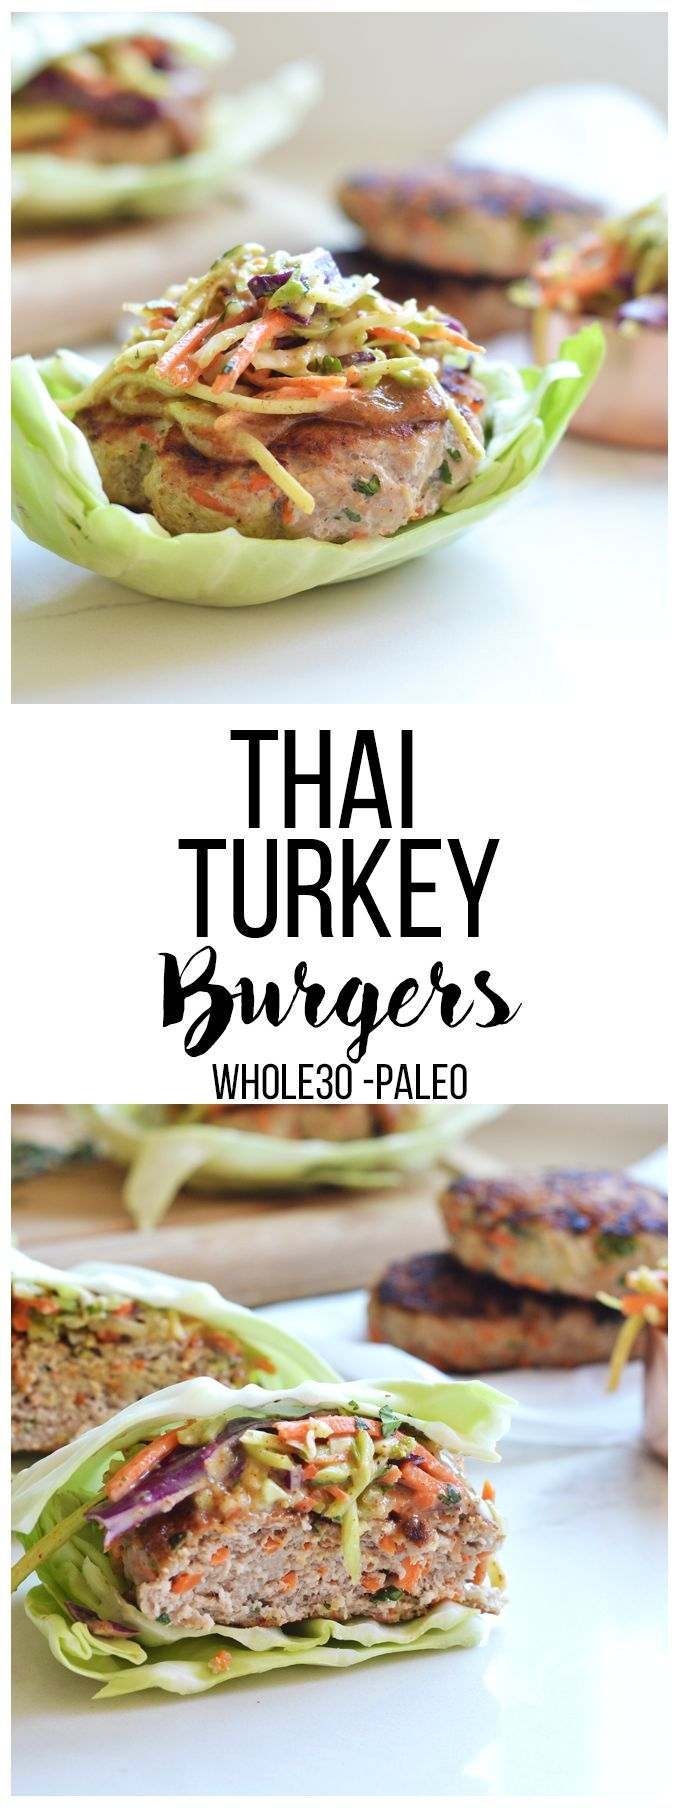 #ad These Thai Turkey Burgers are Whole30 compliant, full of flavor and perfect for any summer barbecue! #turkeylovers #serveturkey